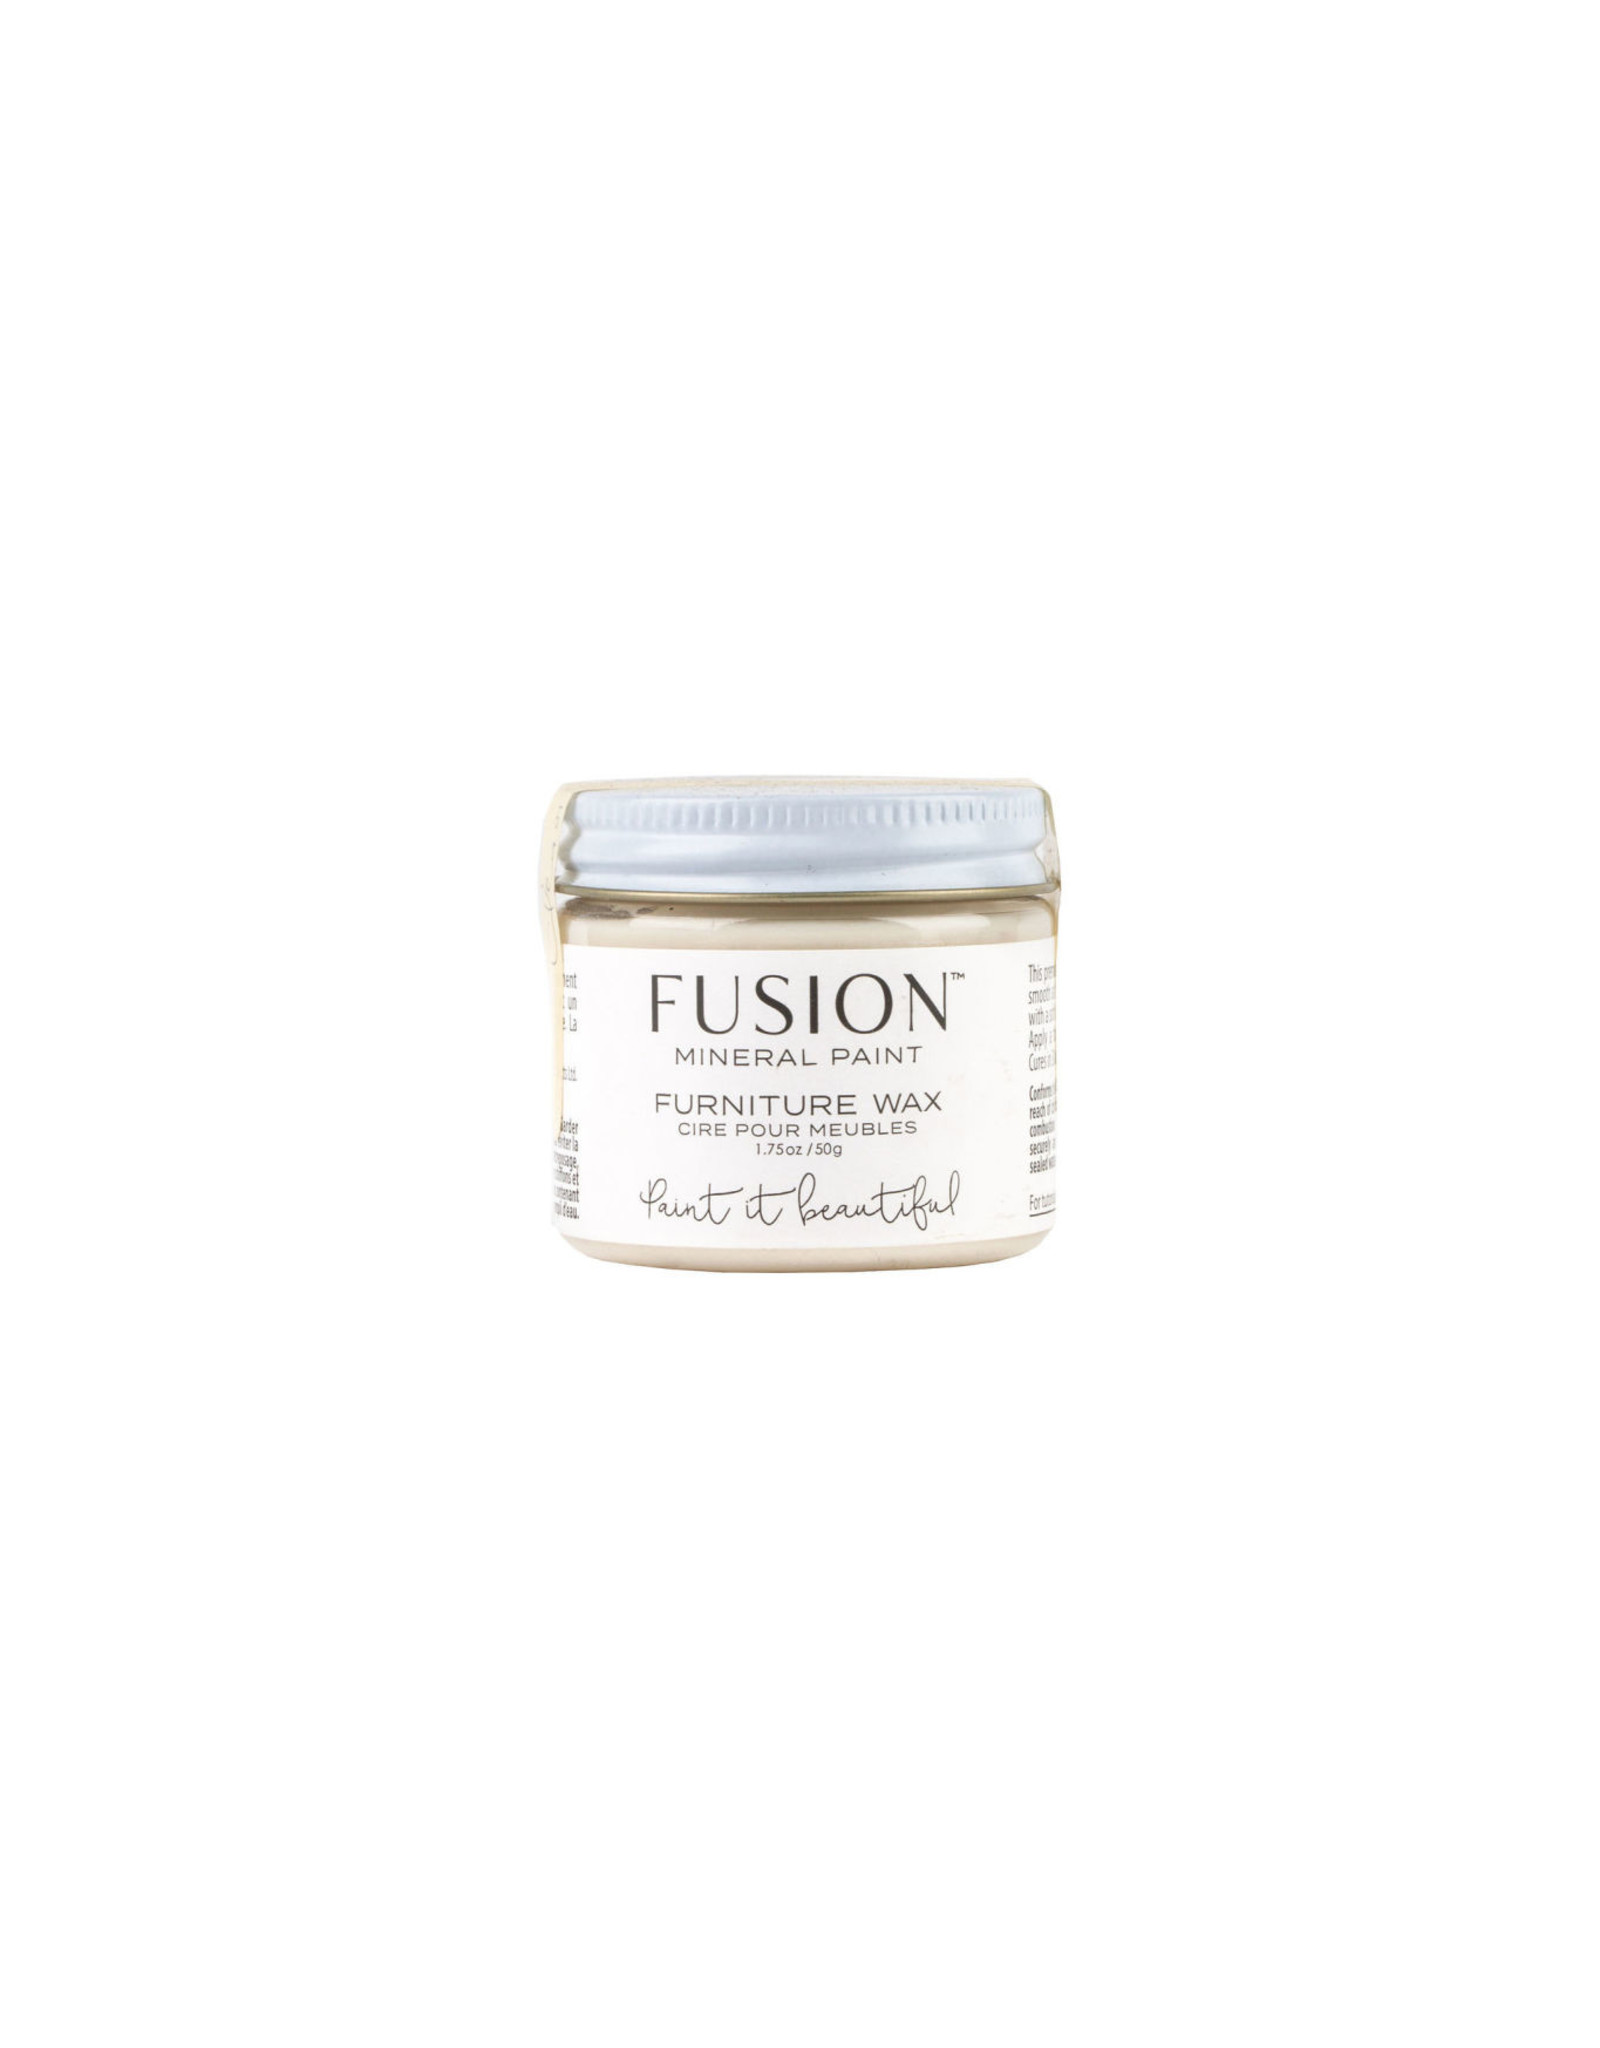 Fusion Mineral Paint Furniture Wax 50g - Clear